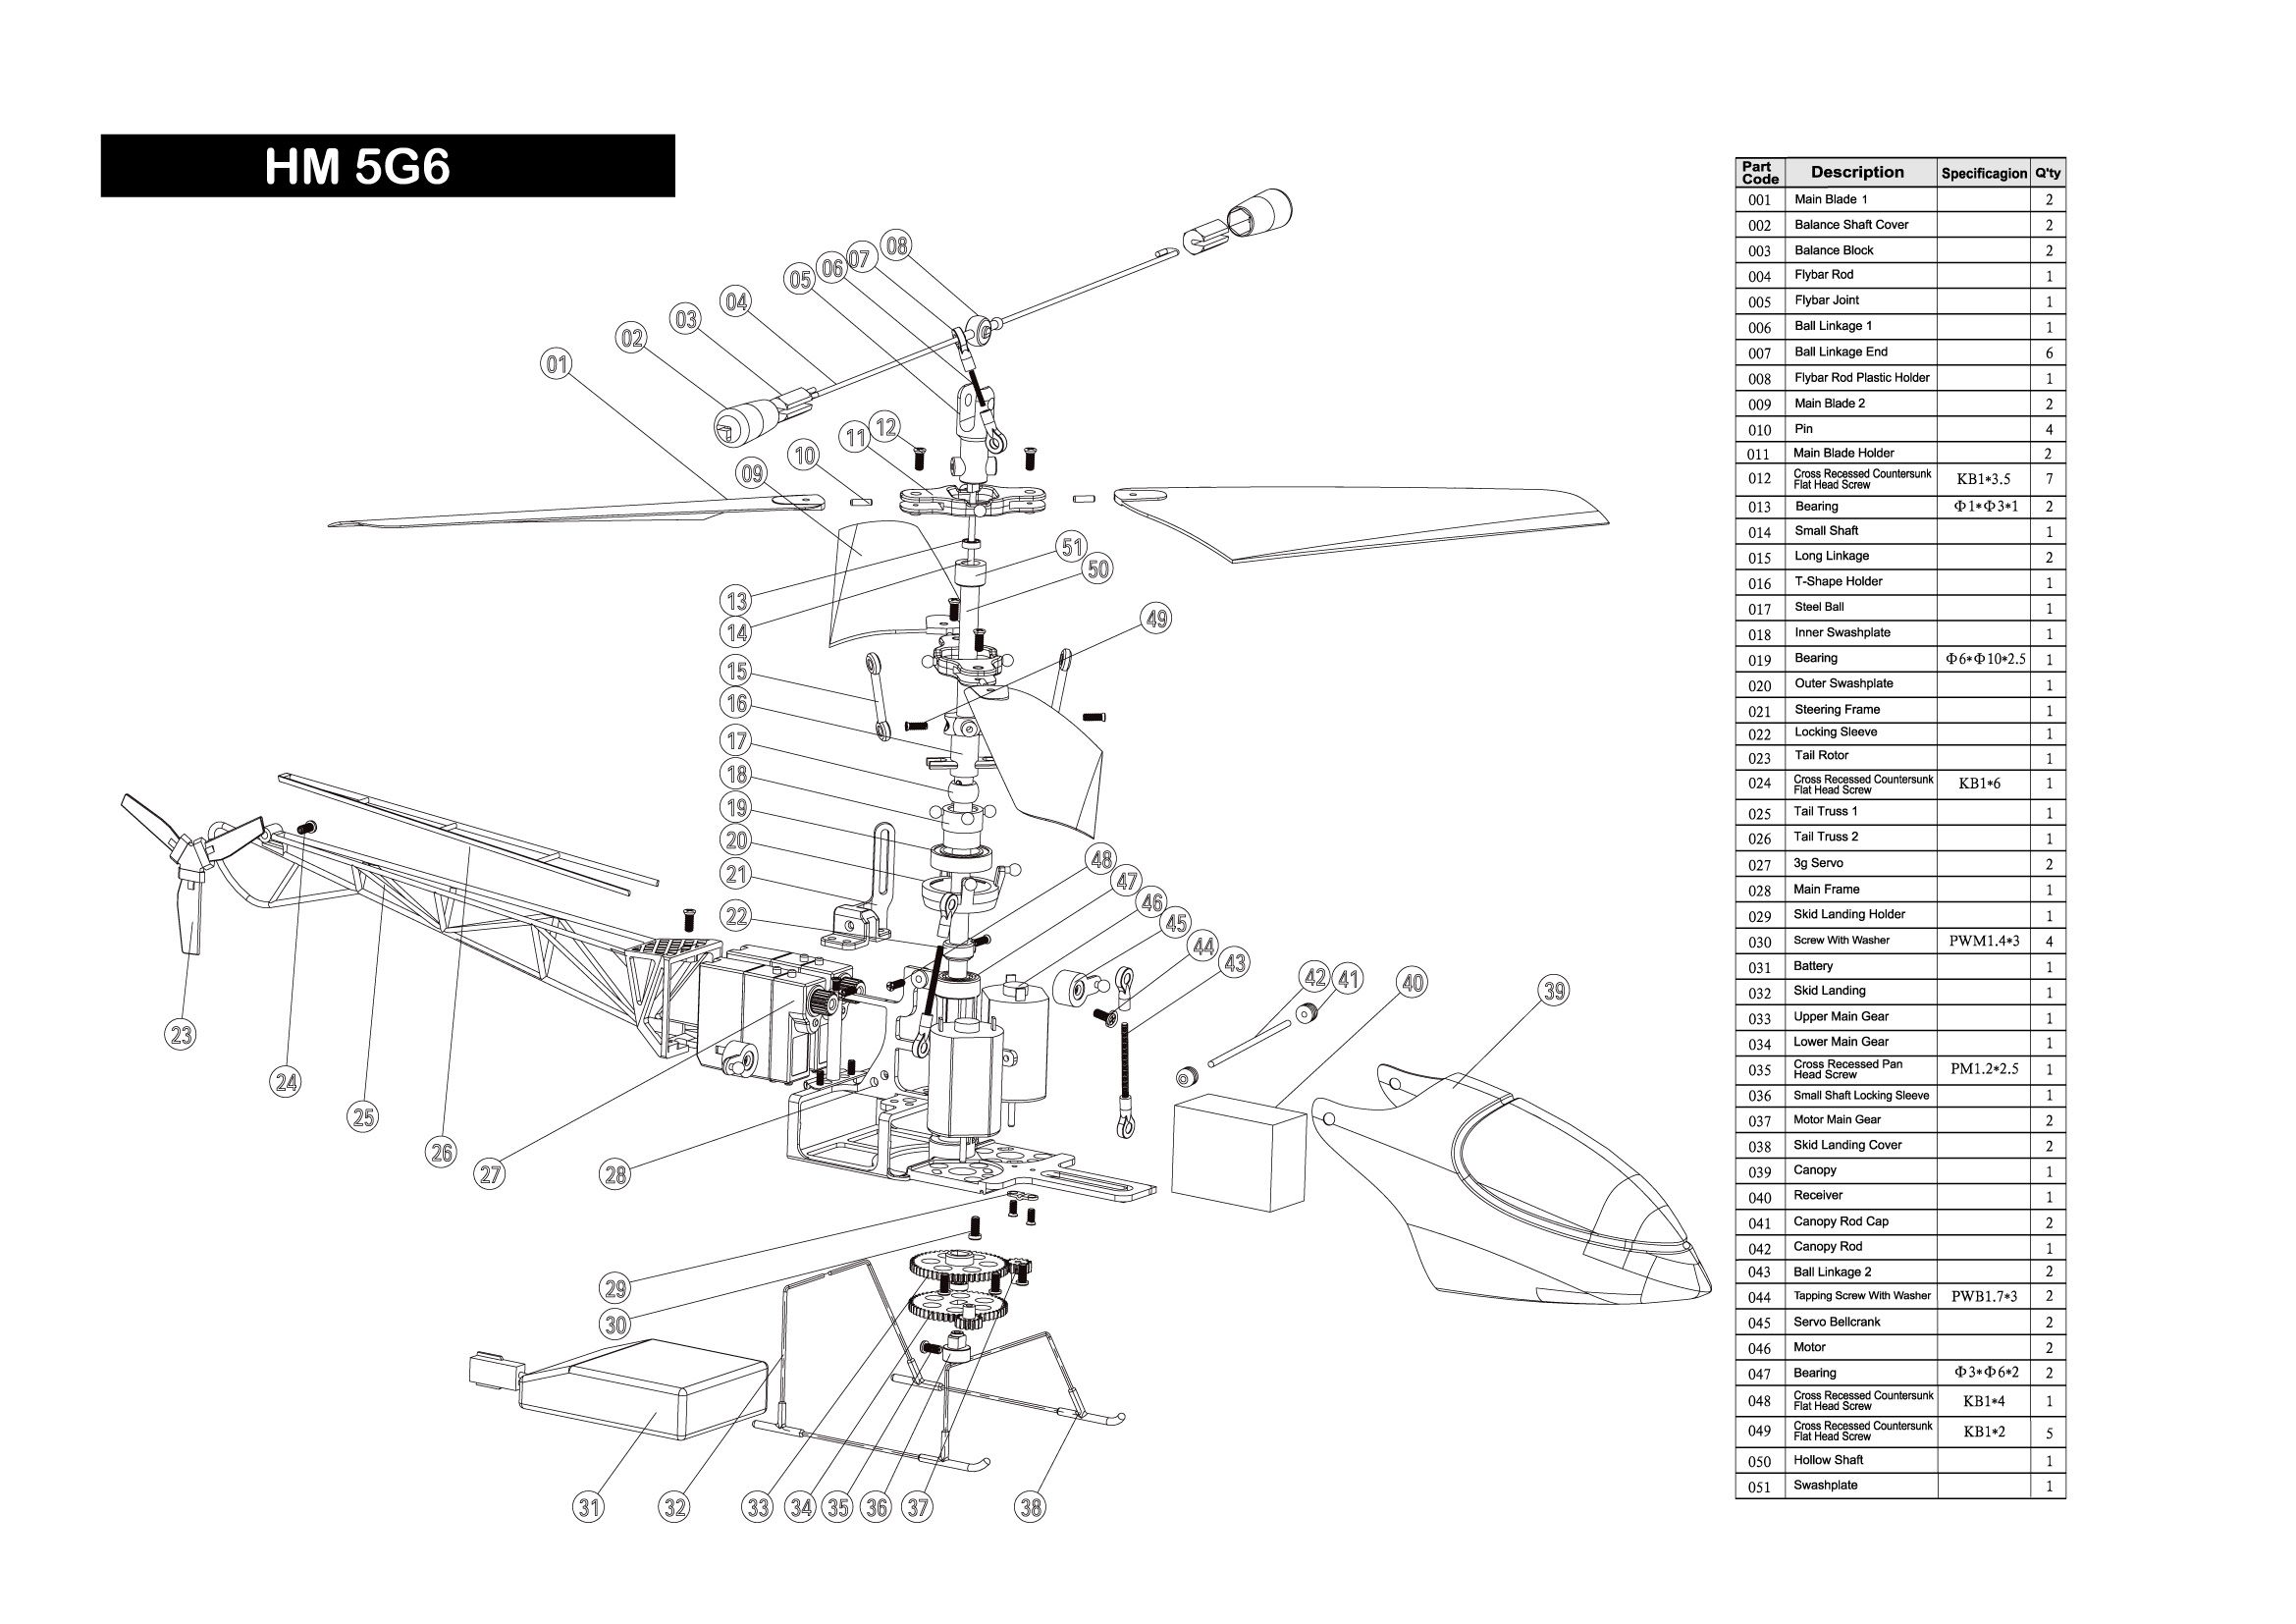 Walkera Hm 5g6 Exploded Diagram Parts List